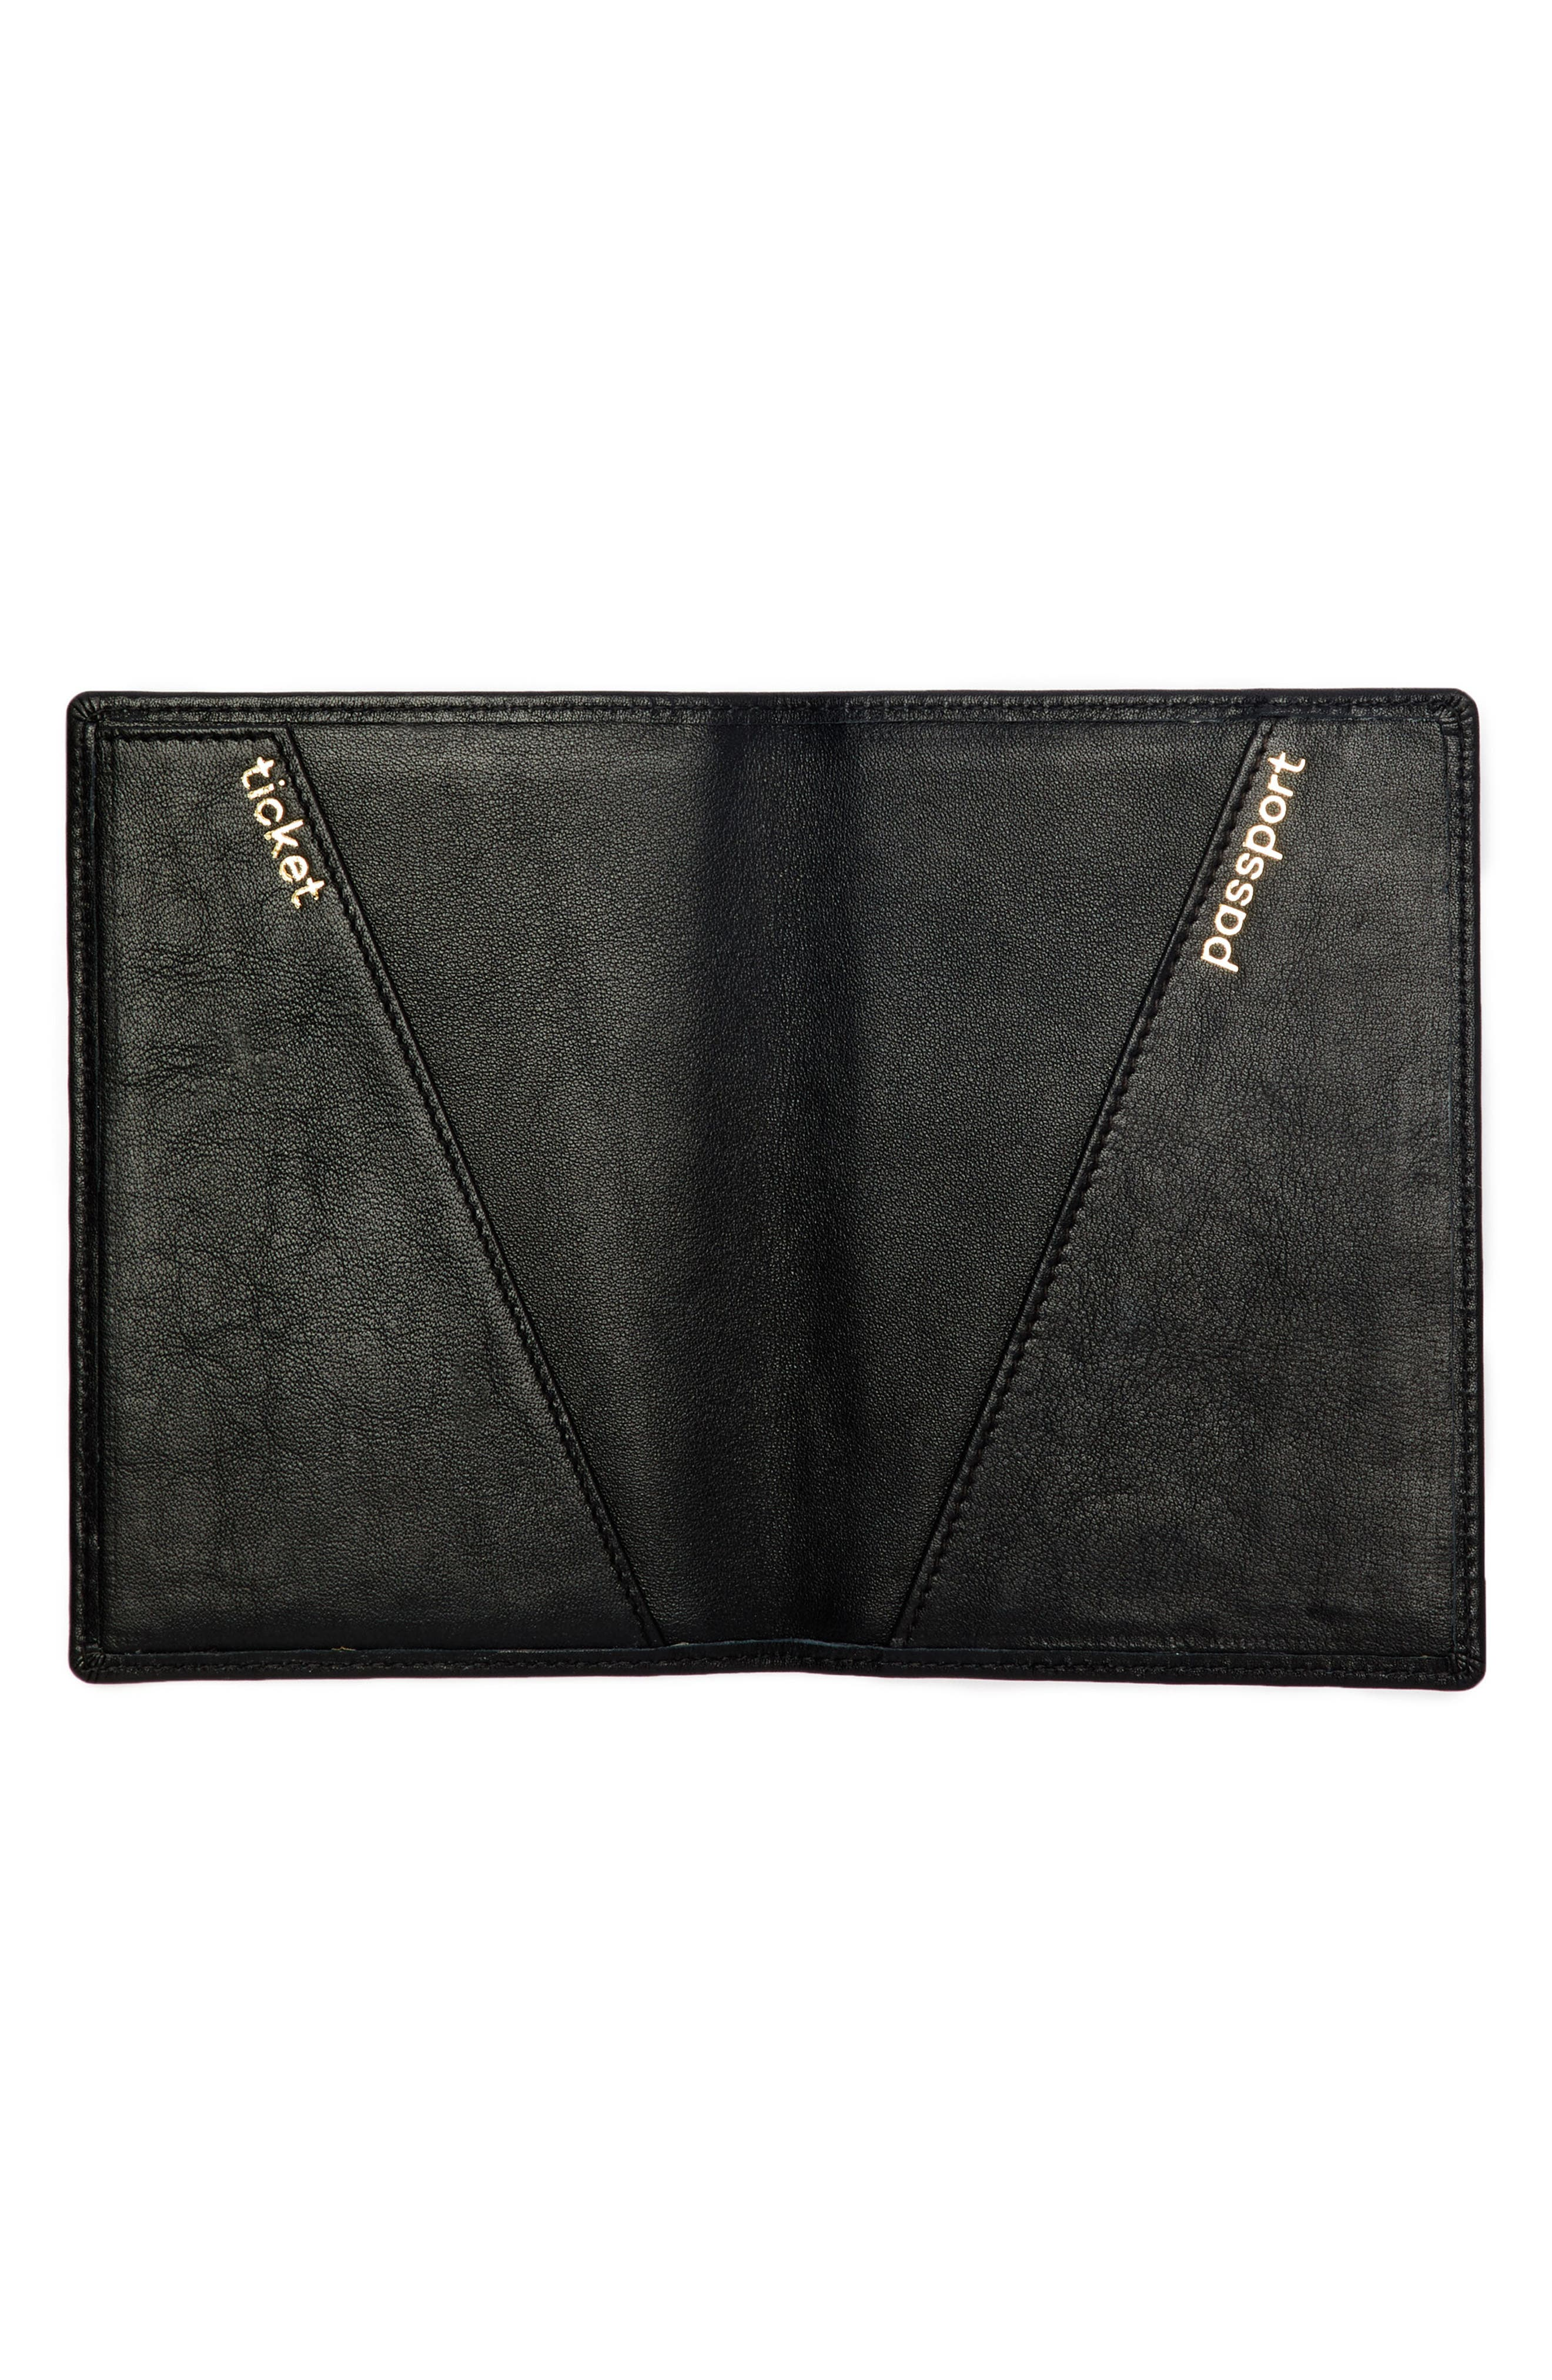 Personalized Leather Passport Case,                             Alternate thumbnail 2, color,                             001